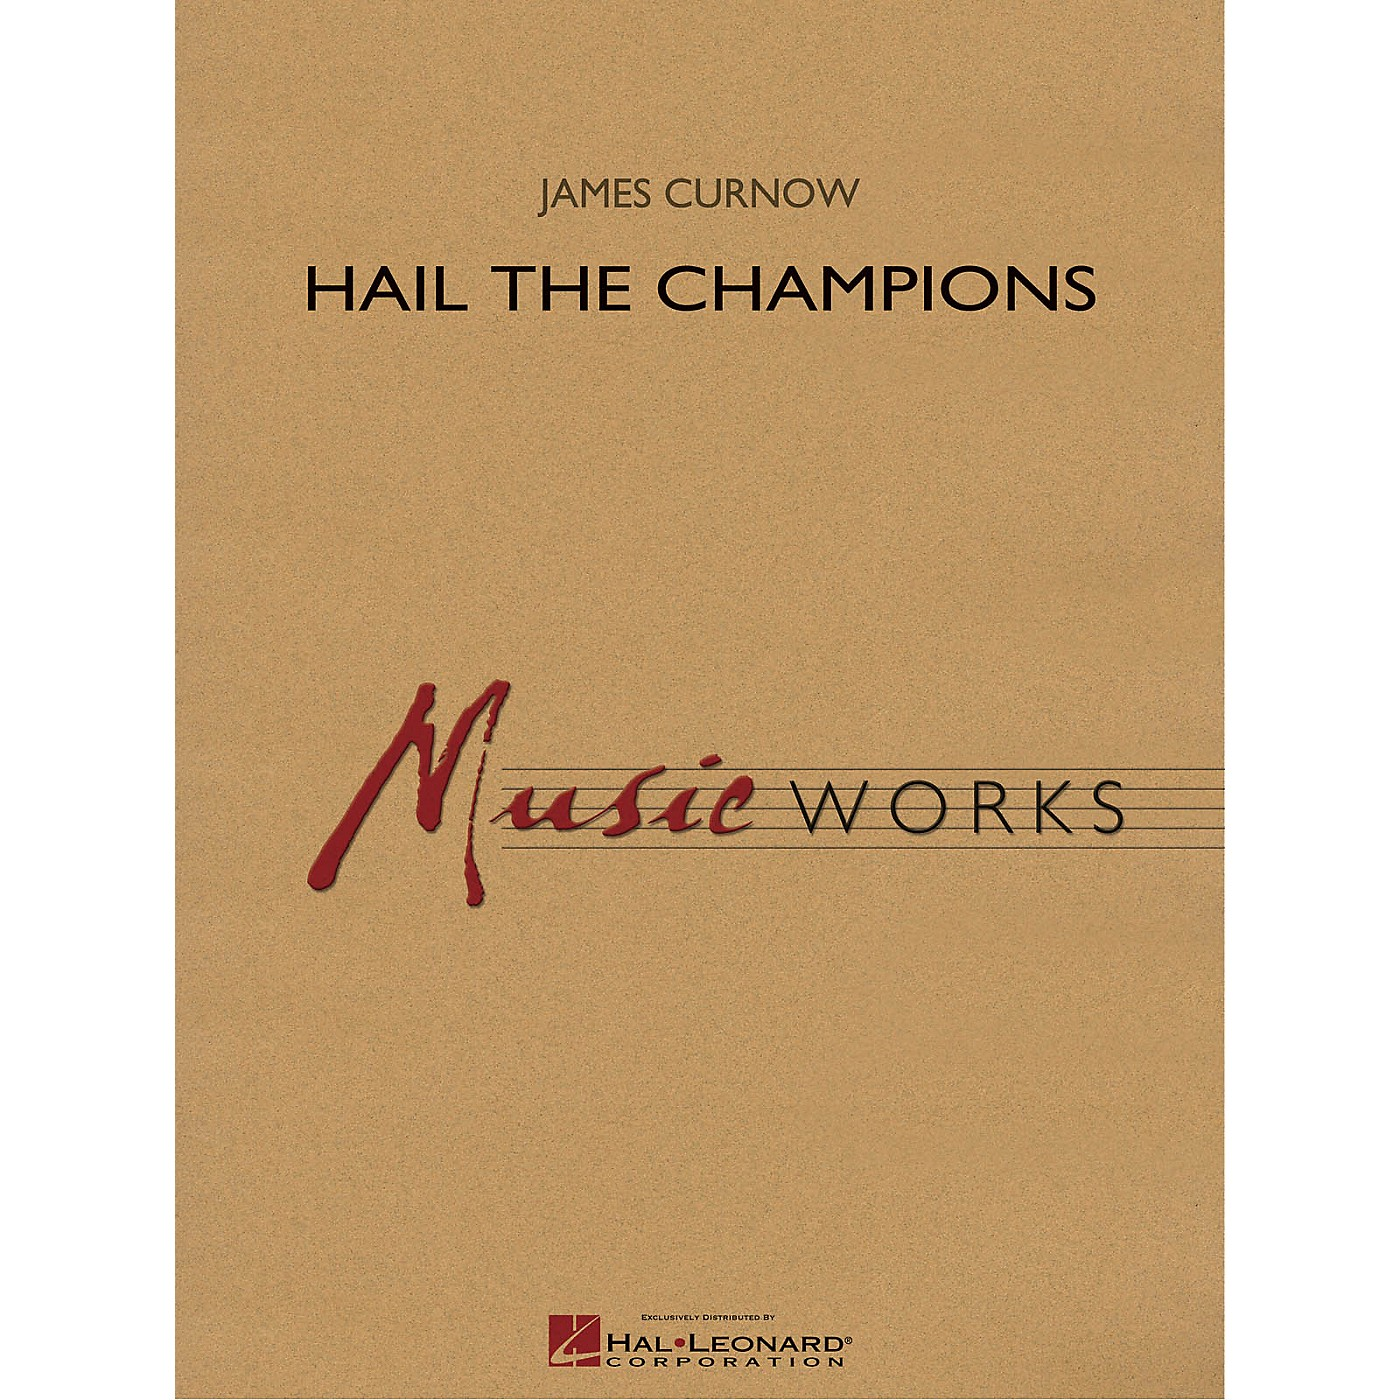 Hal Leonard Hail the Champions Concert Band Level 5 Composed by James Curnow thumbnail